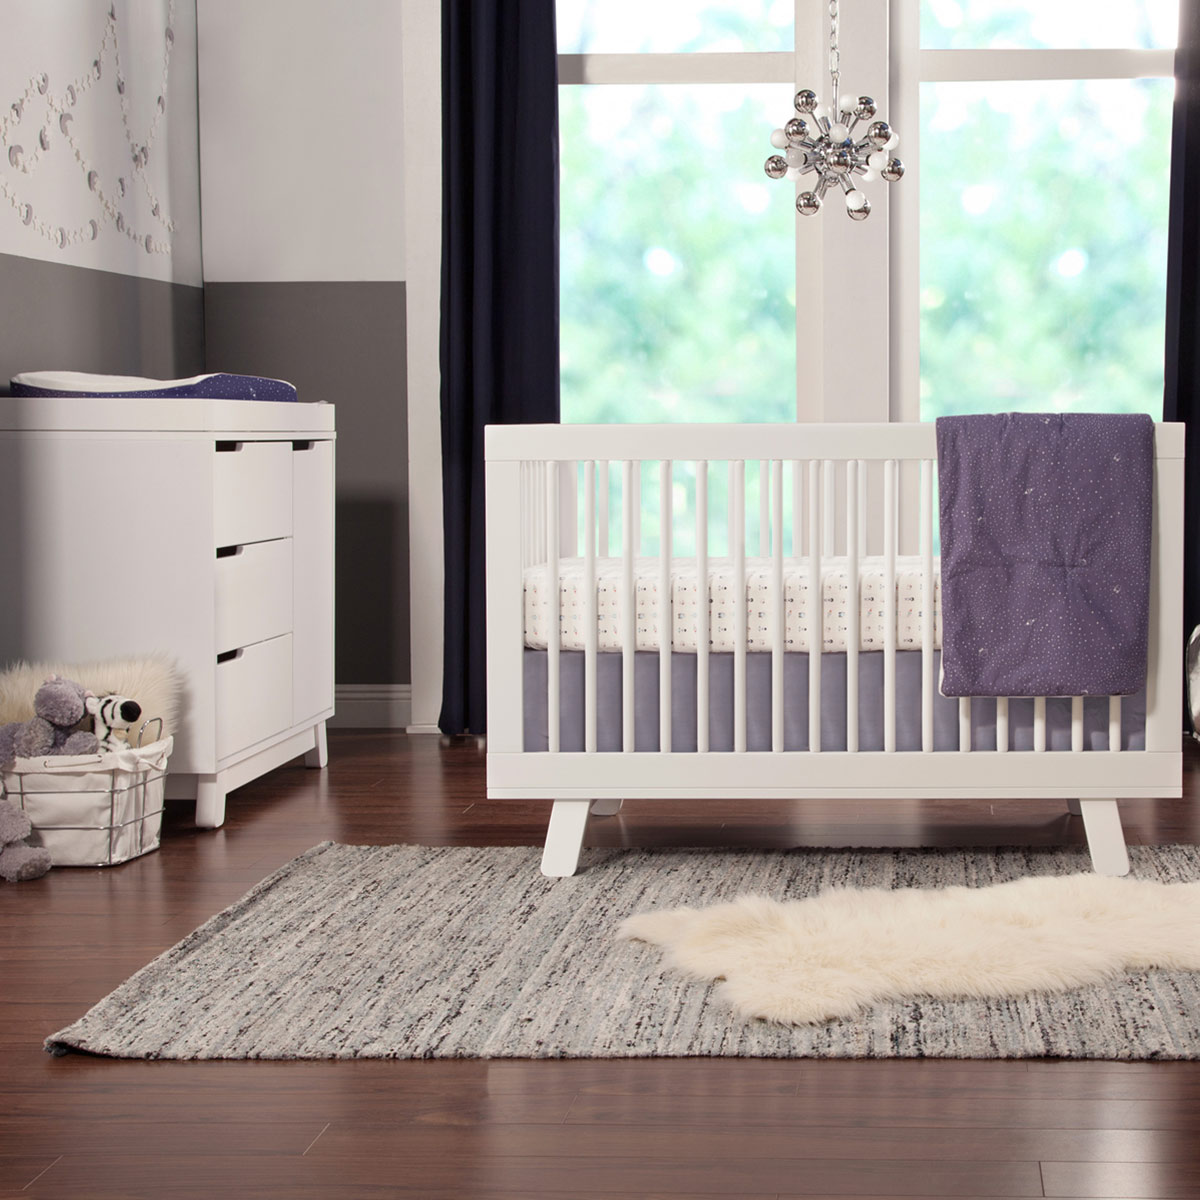 babyletto 2 piece nursery set hudson 3 in 1 convertible crib and hudson changer dresser in white free shipping babyletto furniture